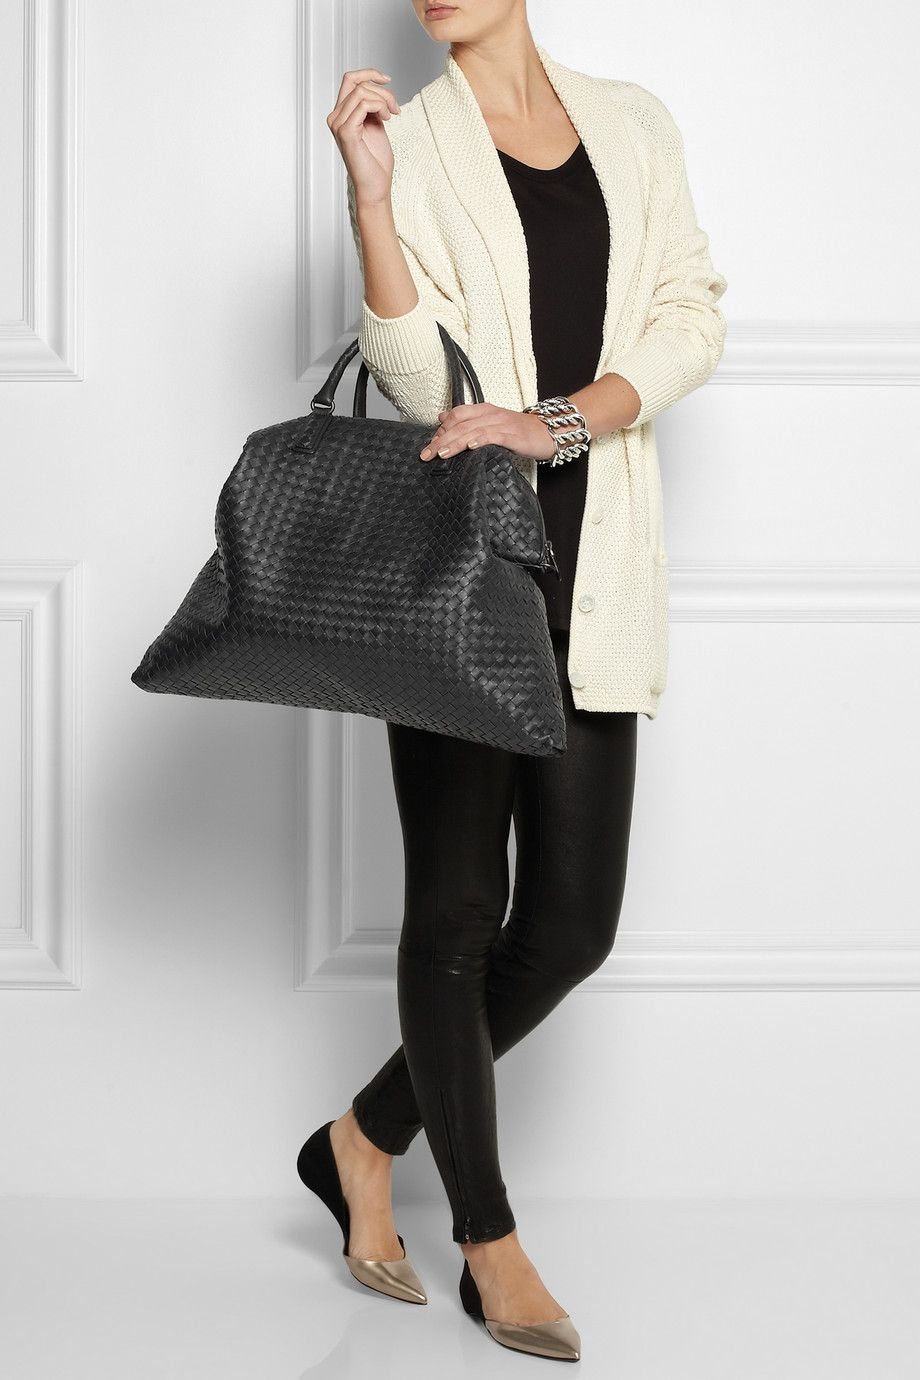 3a4b7423db68 Bottega Veneta | Intrecciato leather tote Just the right size for hand  luggage.